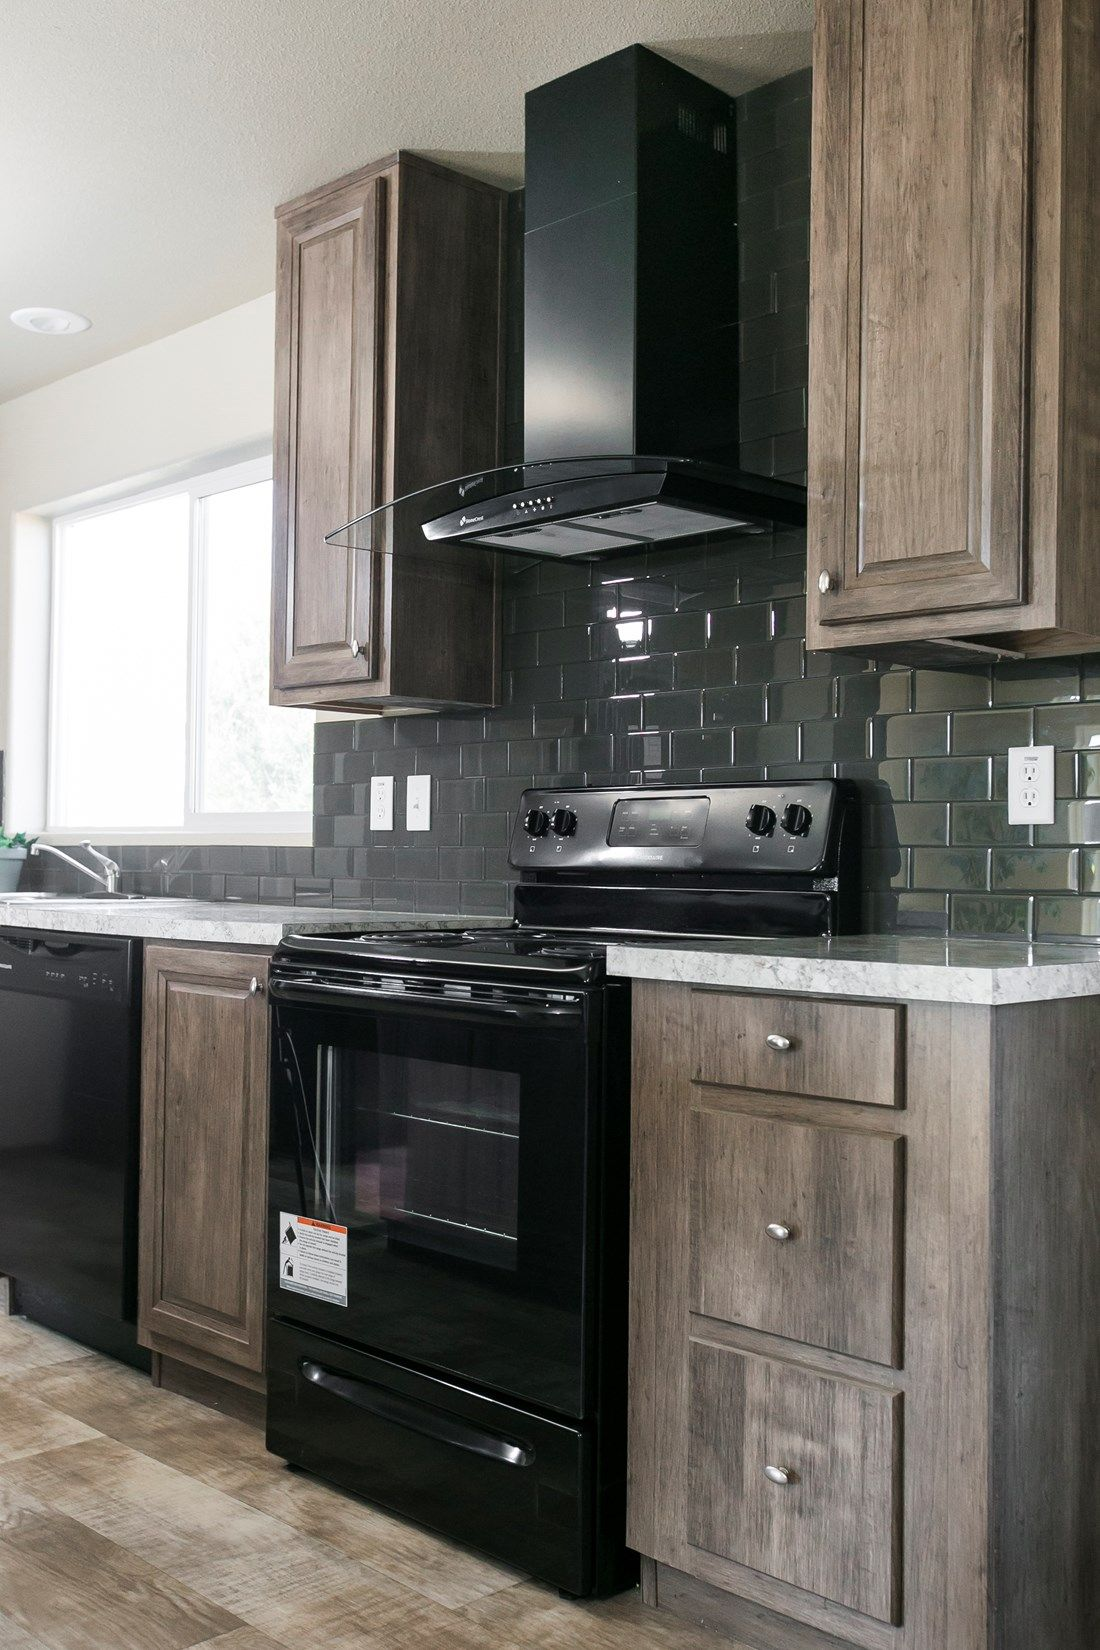 The 2022 COLUMBIA RIVER Kitchen. This Manufactured Mobile Home features 3 bedrooms and 2 baths.